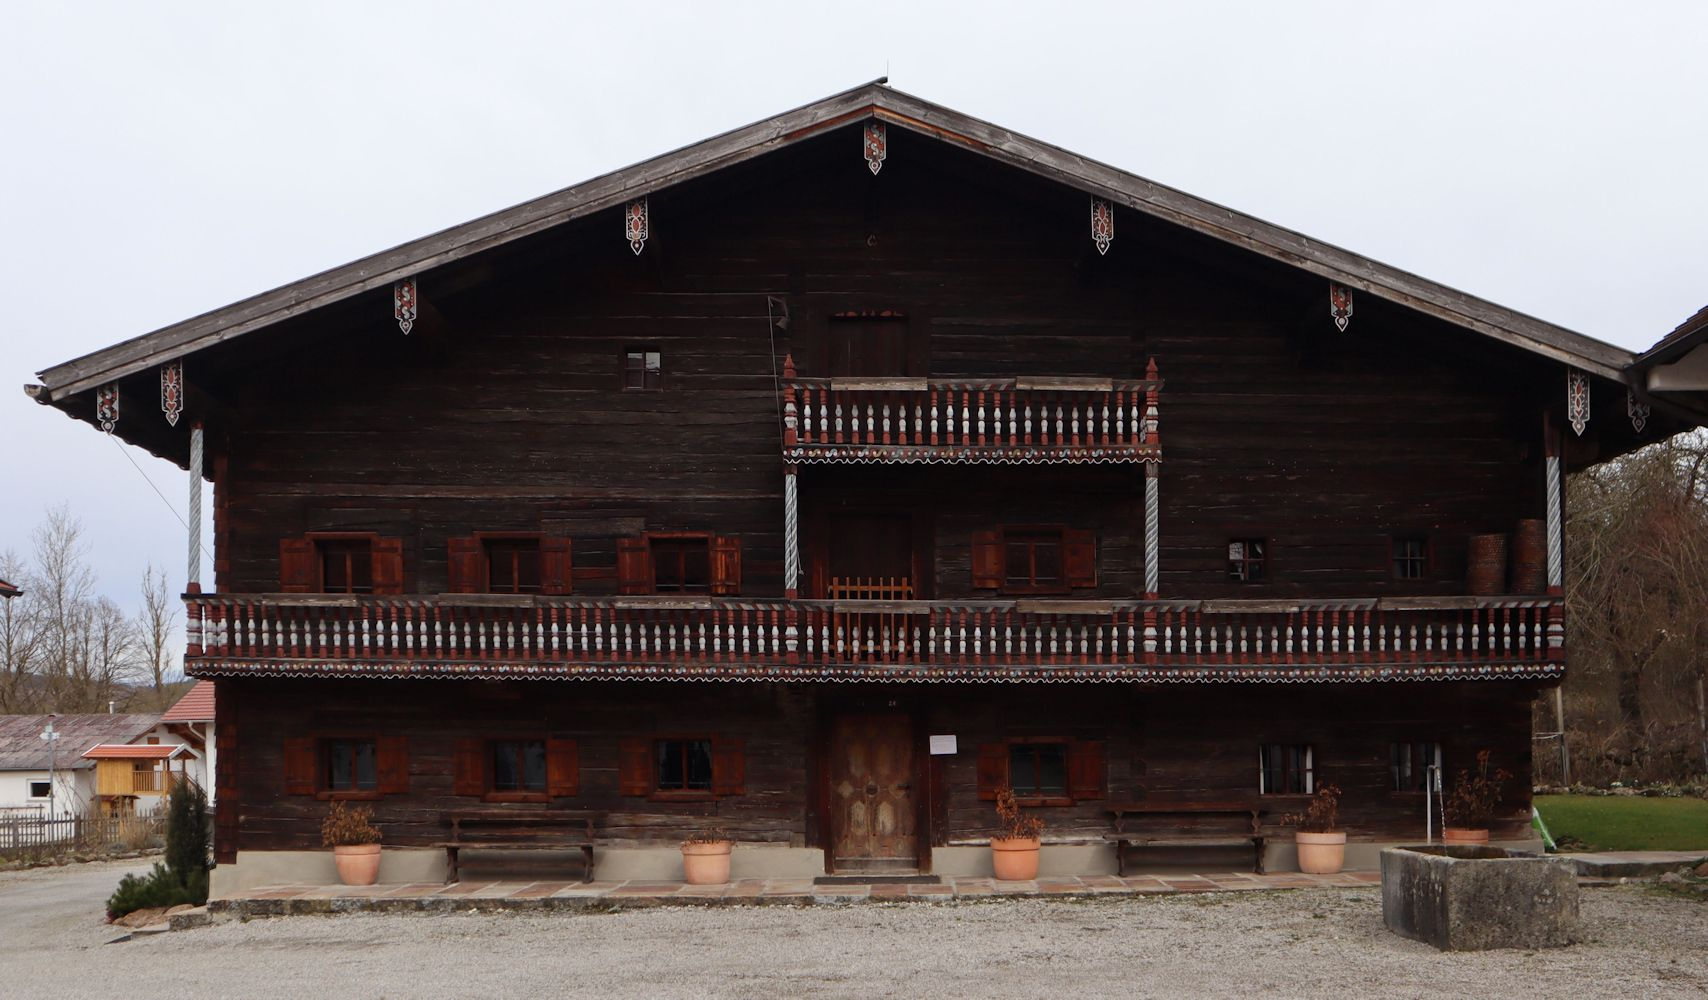 Konrads Elternhaus (links) in Parzham